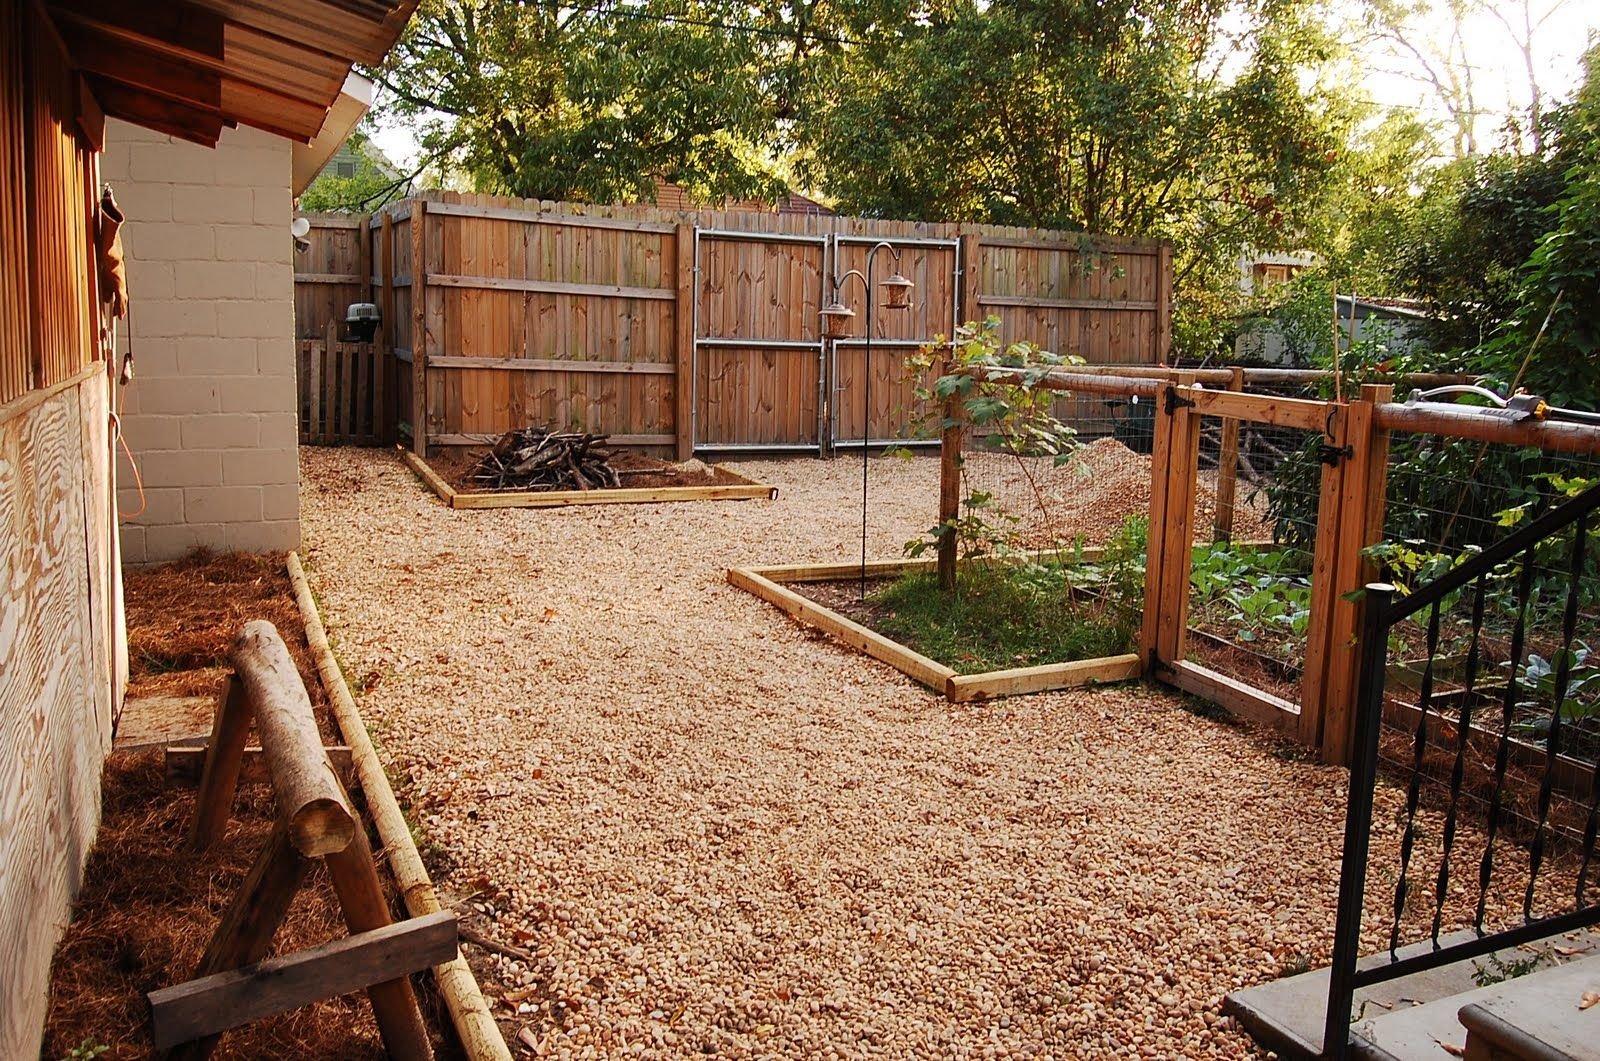 Backyard Cheap Idea Desert Landscaping Urban SelfSufficientist - Desert backyard landscaping ideas